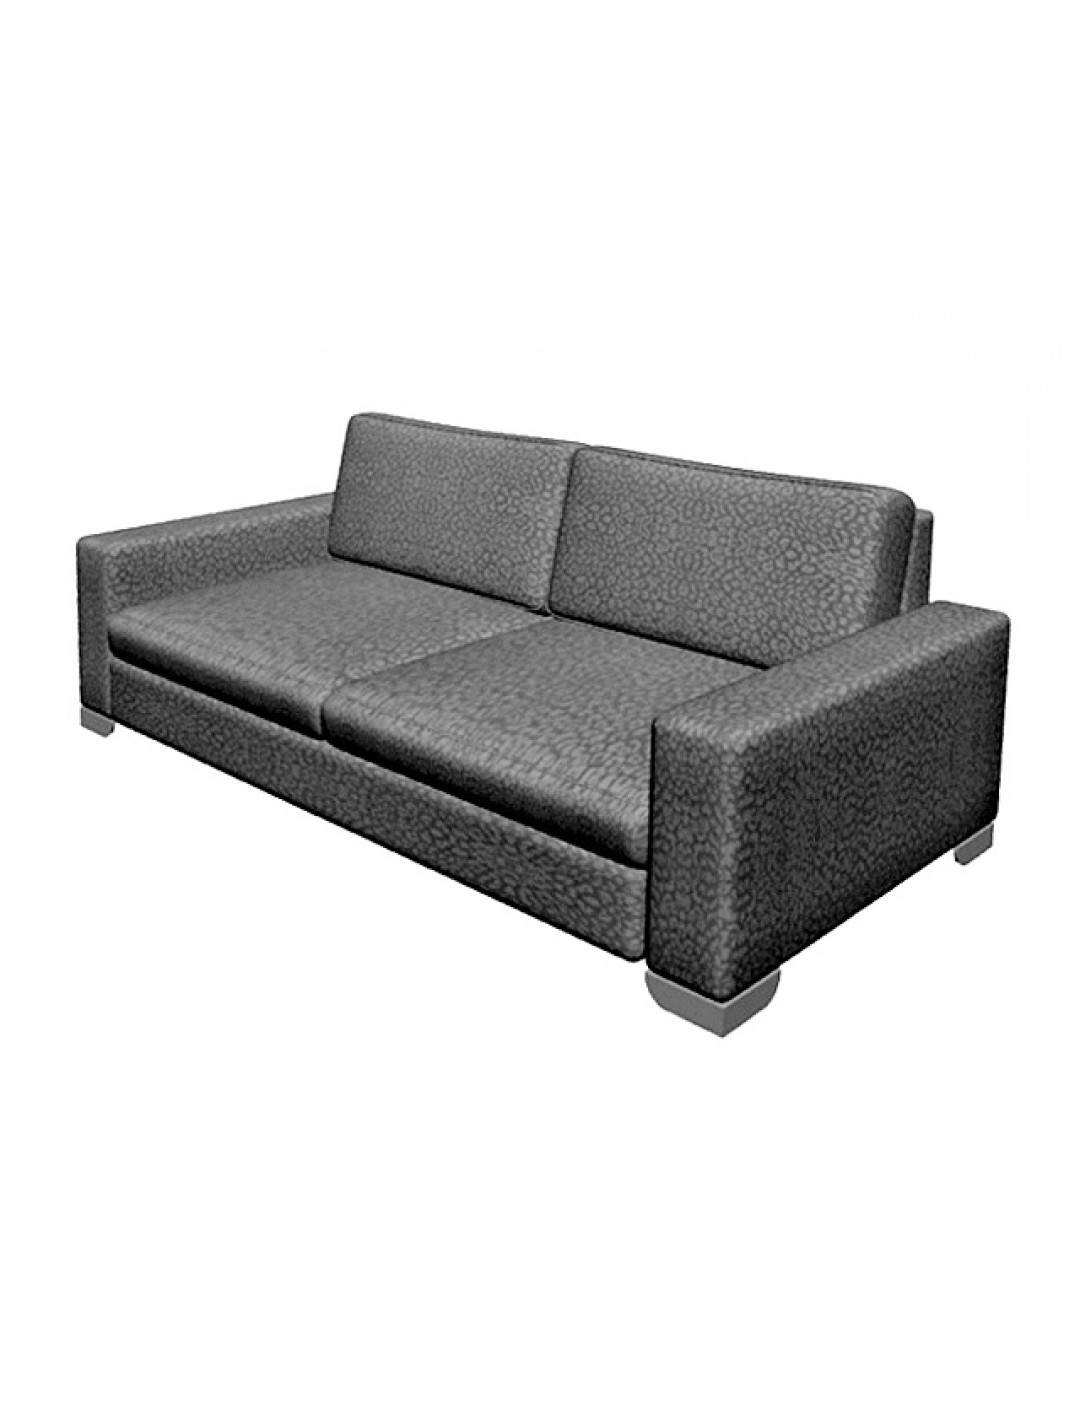 Orson 100 2 Seater Sofa , Upholstery: Without Fabric Pertaining To Orsen Tv Stands (View 4 of 20)